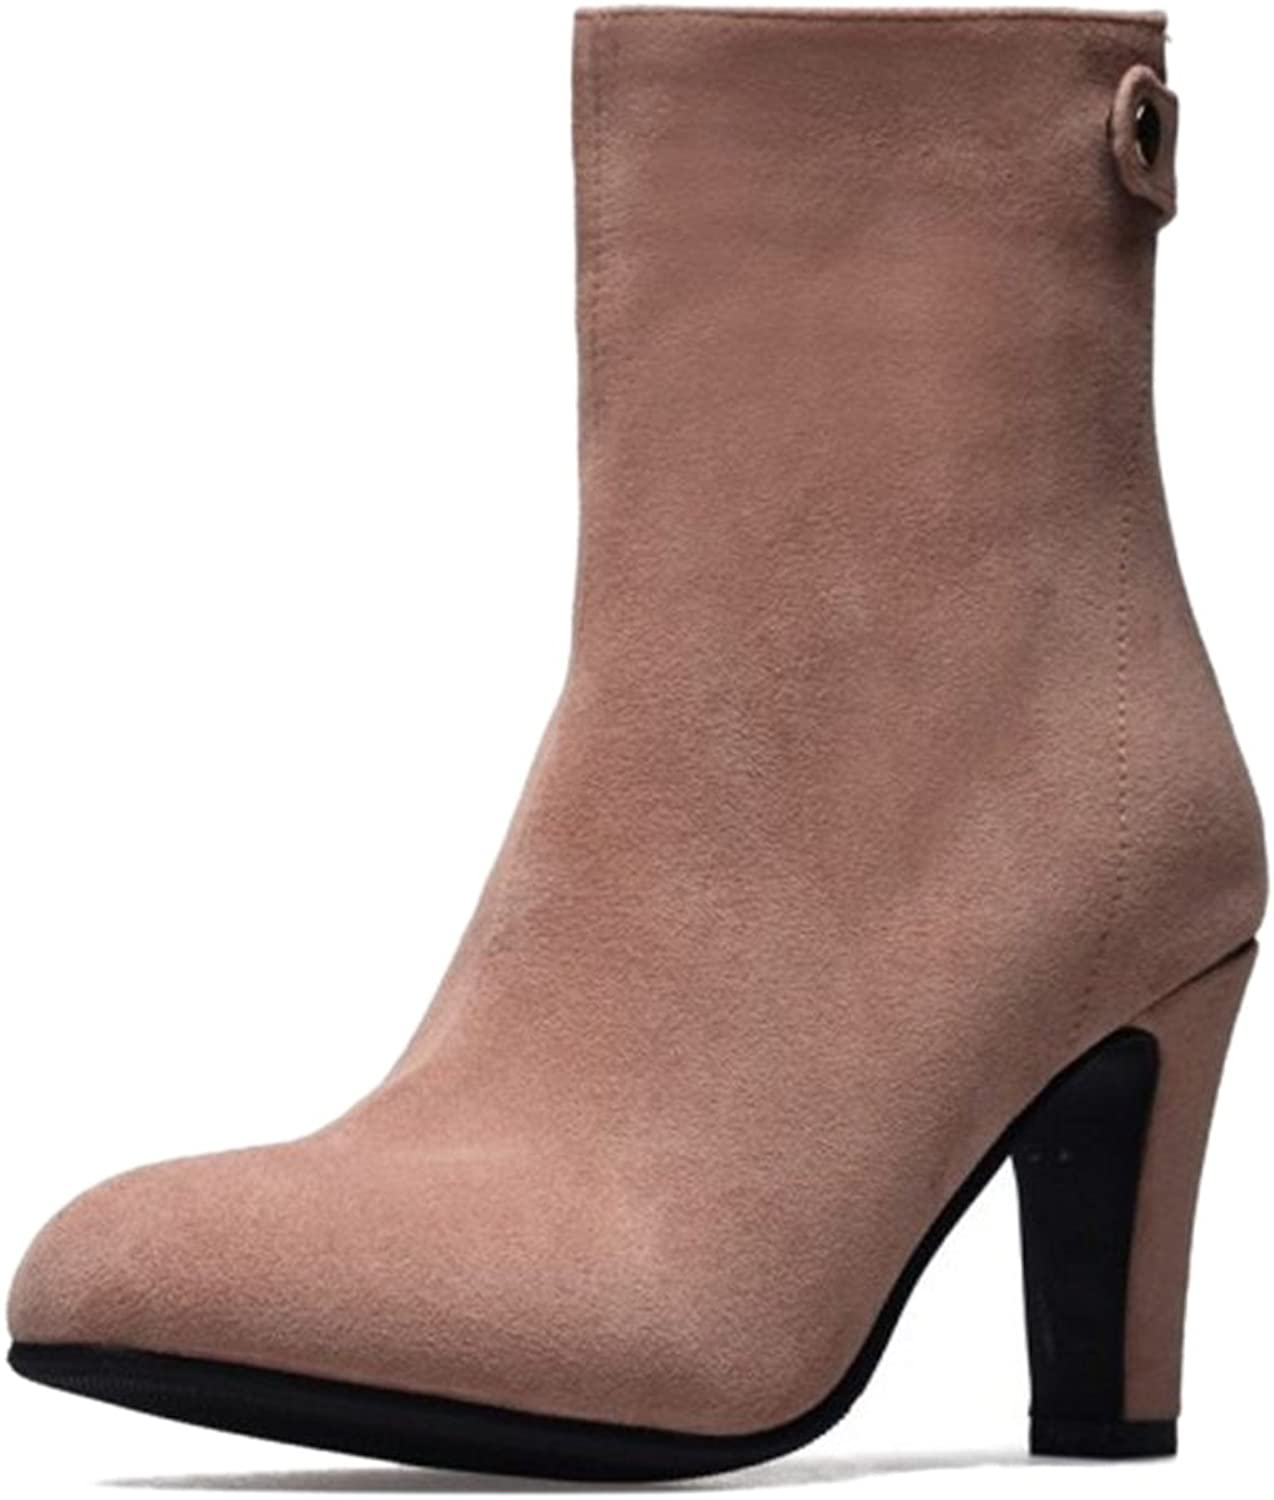 CUTEHEELS Fashion Ankle Boots with High Block Heel and Pointed Toe with Small Plus Black